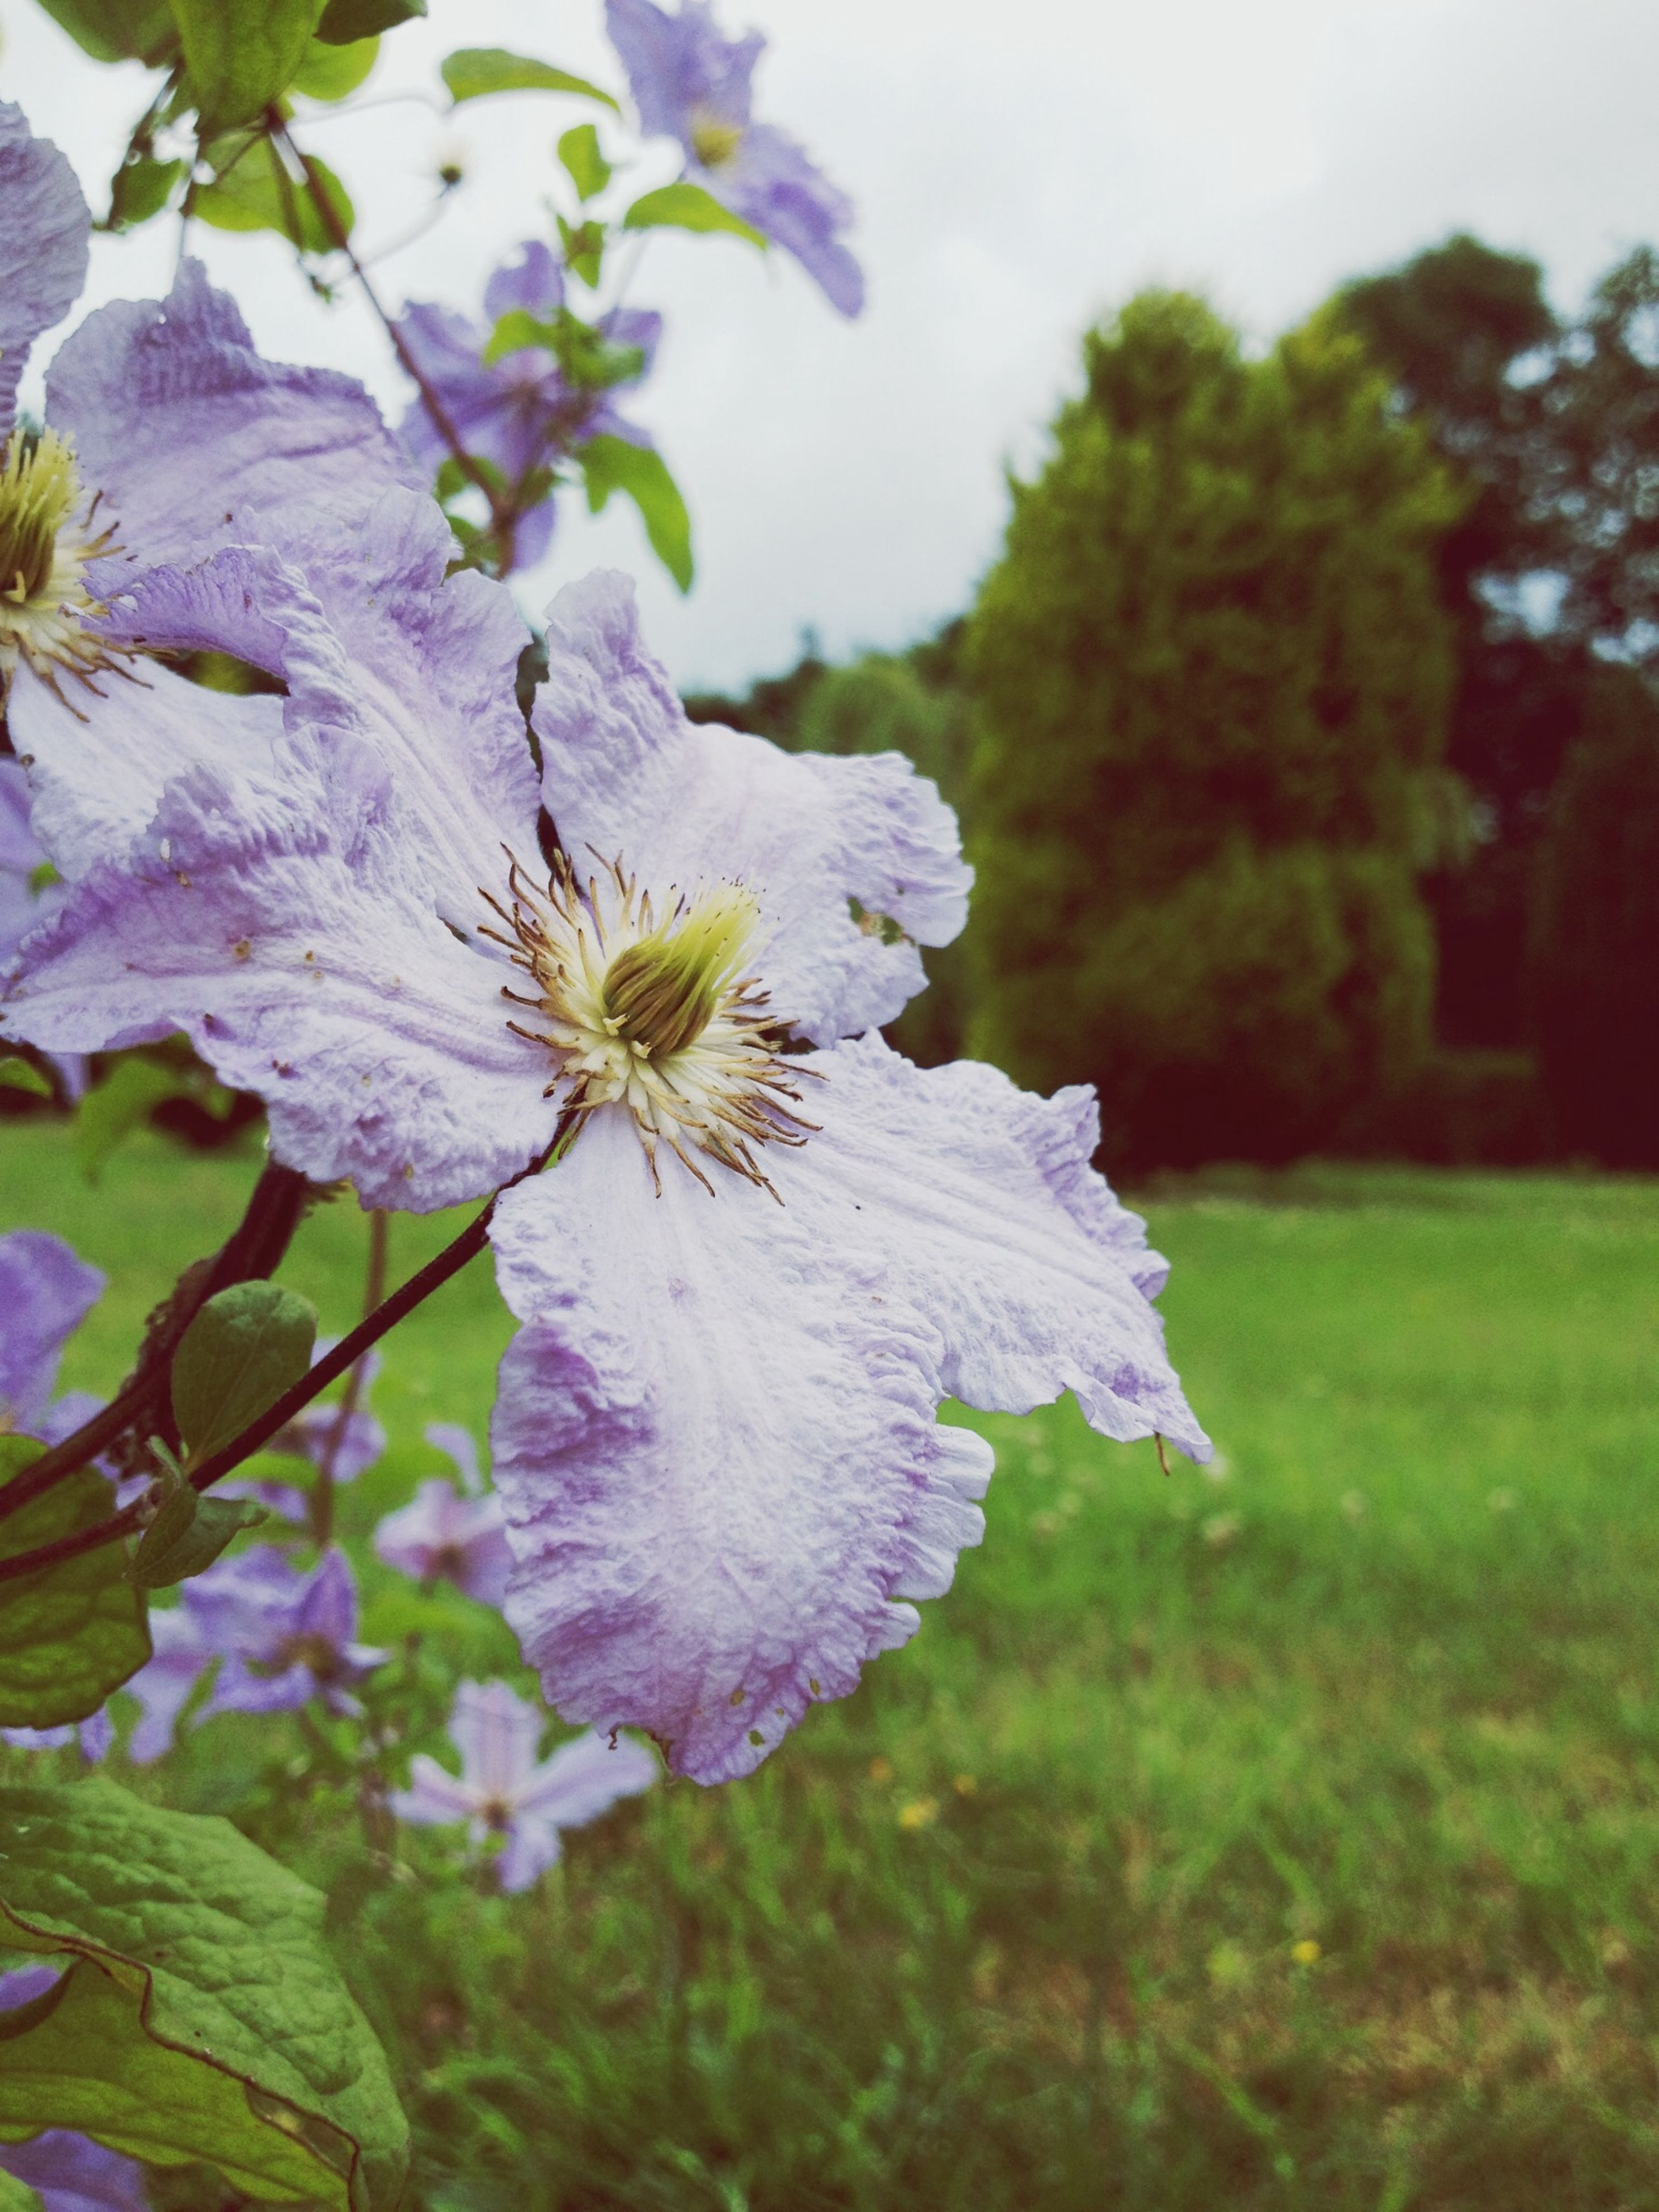 flower, freshness, fragility, growth, petal, beauty in nature, flower head, focus on foreground, close-up, nature, blooming, in bloom, blossom, purple, tree, plant, park - man made space, day, springtime, field